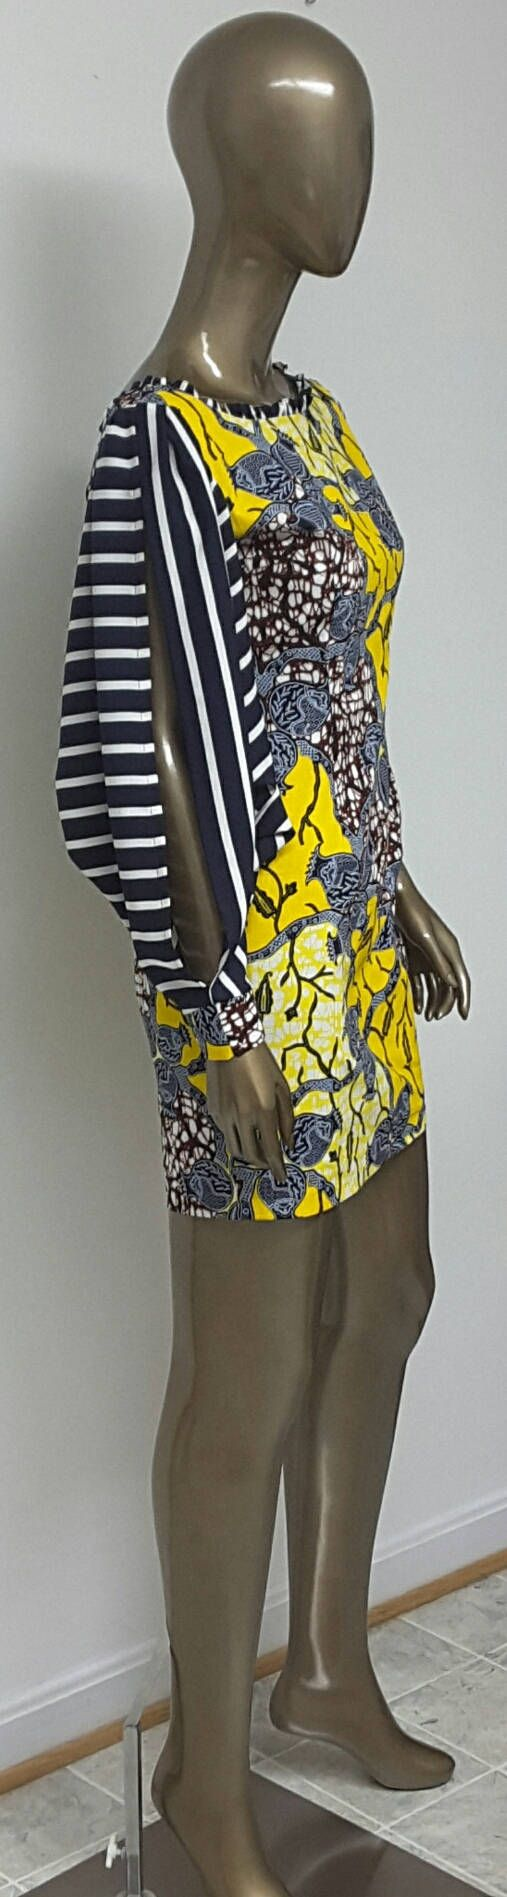 This is a beautiful fitted African Print mini dress with chiffon Slitted bubble sleeves, Scooped low back. The sleeves are dress unlined and very airy. Beautiful dress for a night out or any occassion. Dress length between 32 and 36 inches.  The sleeves can be done in white and navy as well. Select color when you order.    INCLUDED: • One dress DETAILS: • African Print • Care Instructions: Cold wash. Press  DRESS SIZES * US 2 – Bust 33 - Waist 24 inches - Hips 34-35 inches * US 4 -- Bust 34…